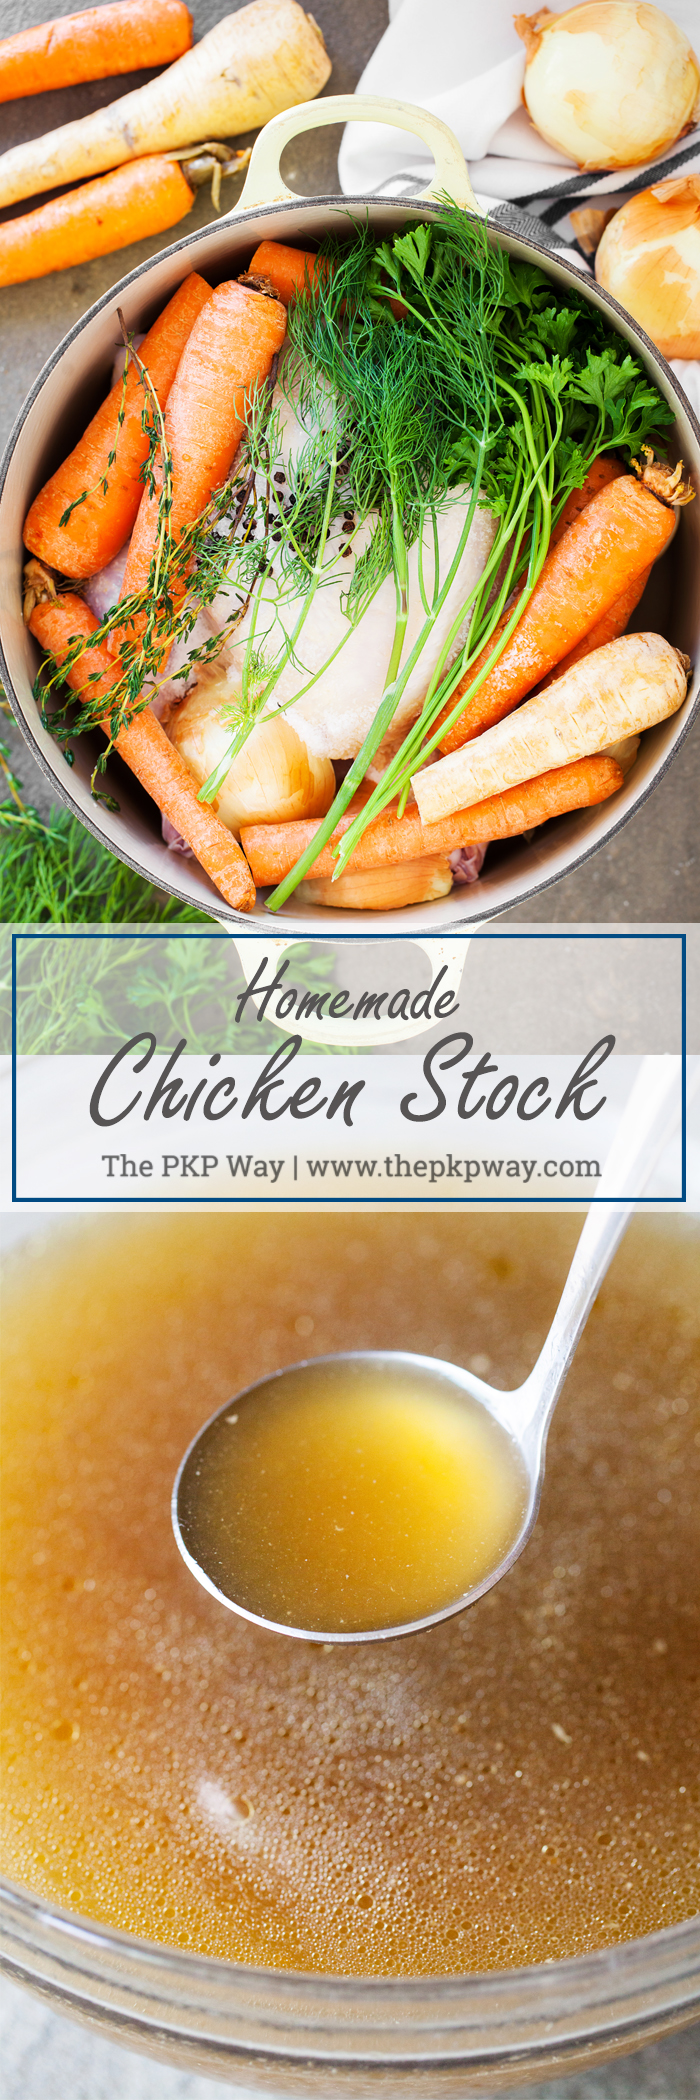 Fresh, homemade chicken stock that will make you rethink picking up that carton the next time you're at the store.